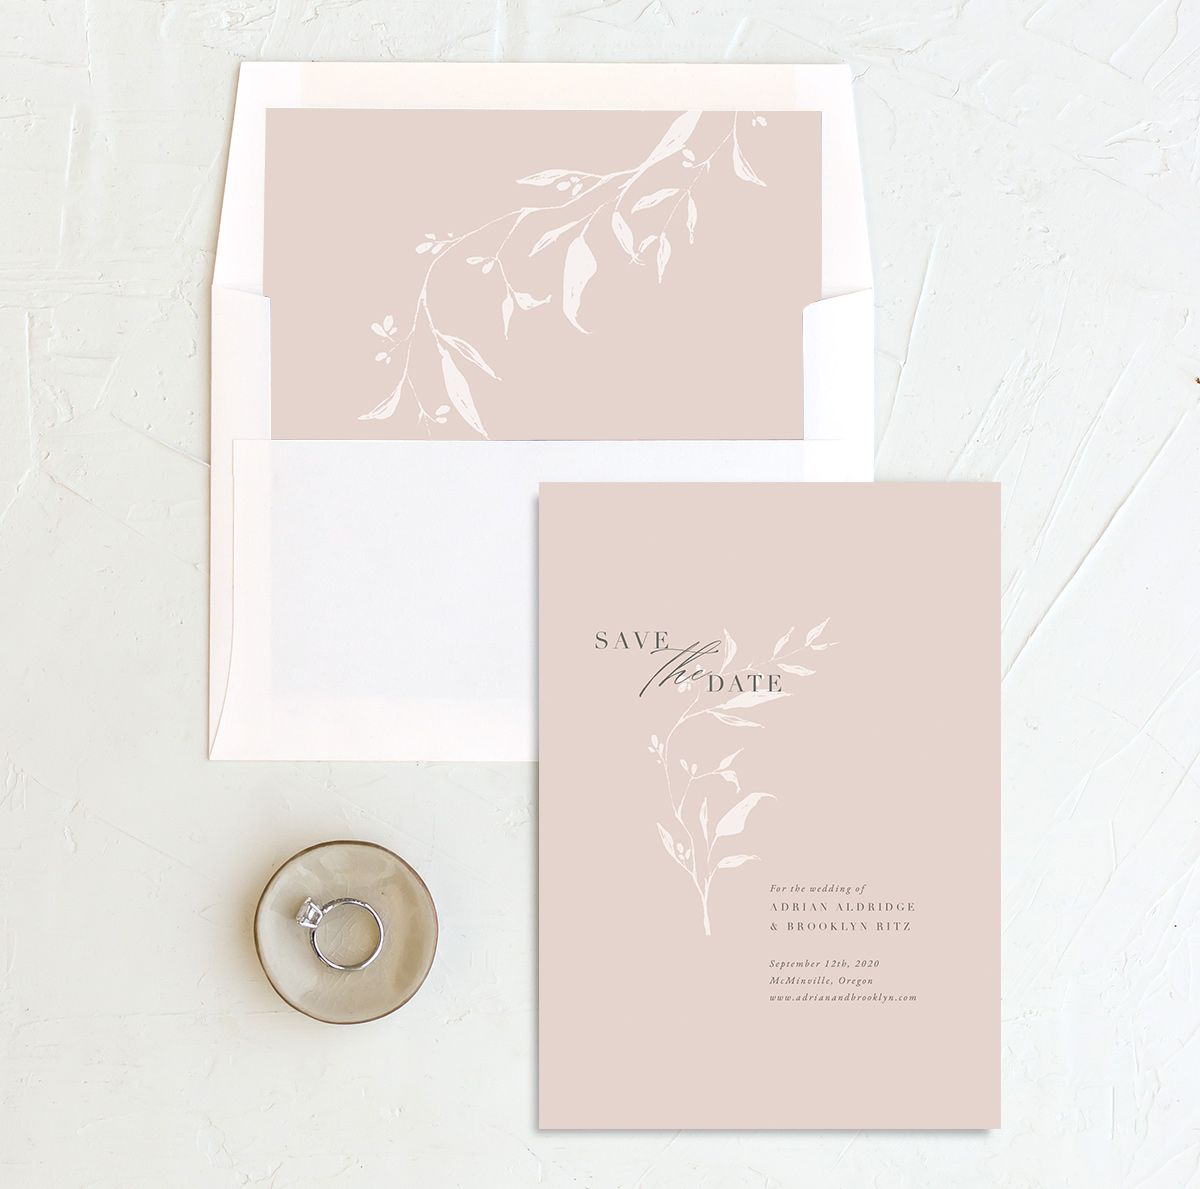 Rustic Minimal Save the Date in pink